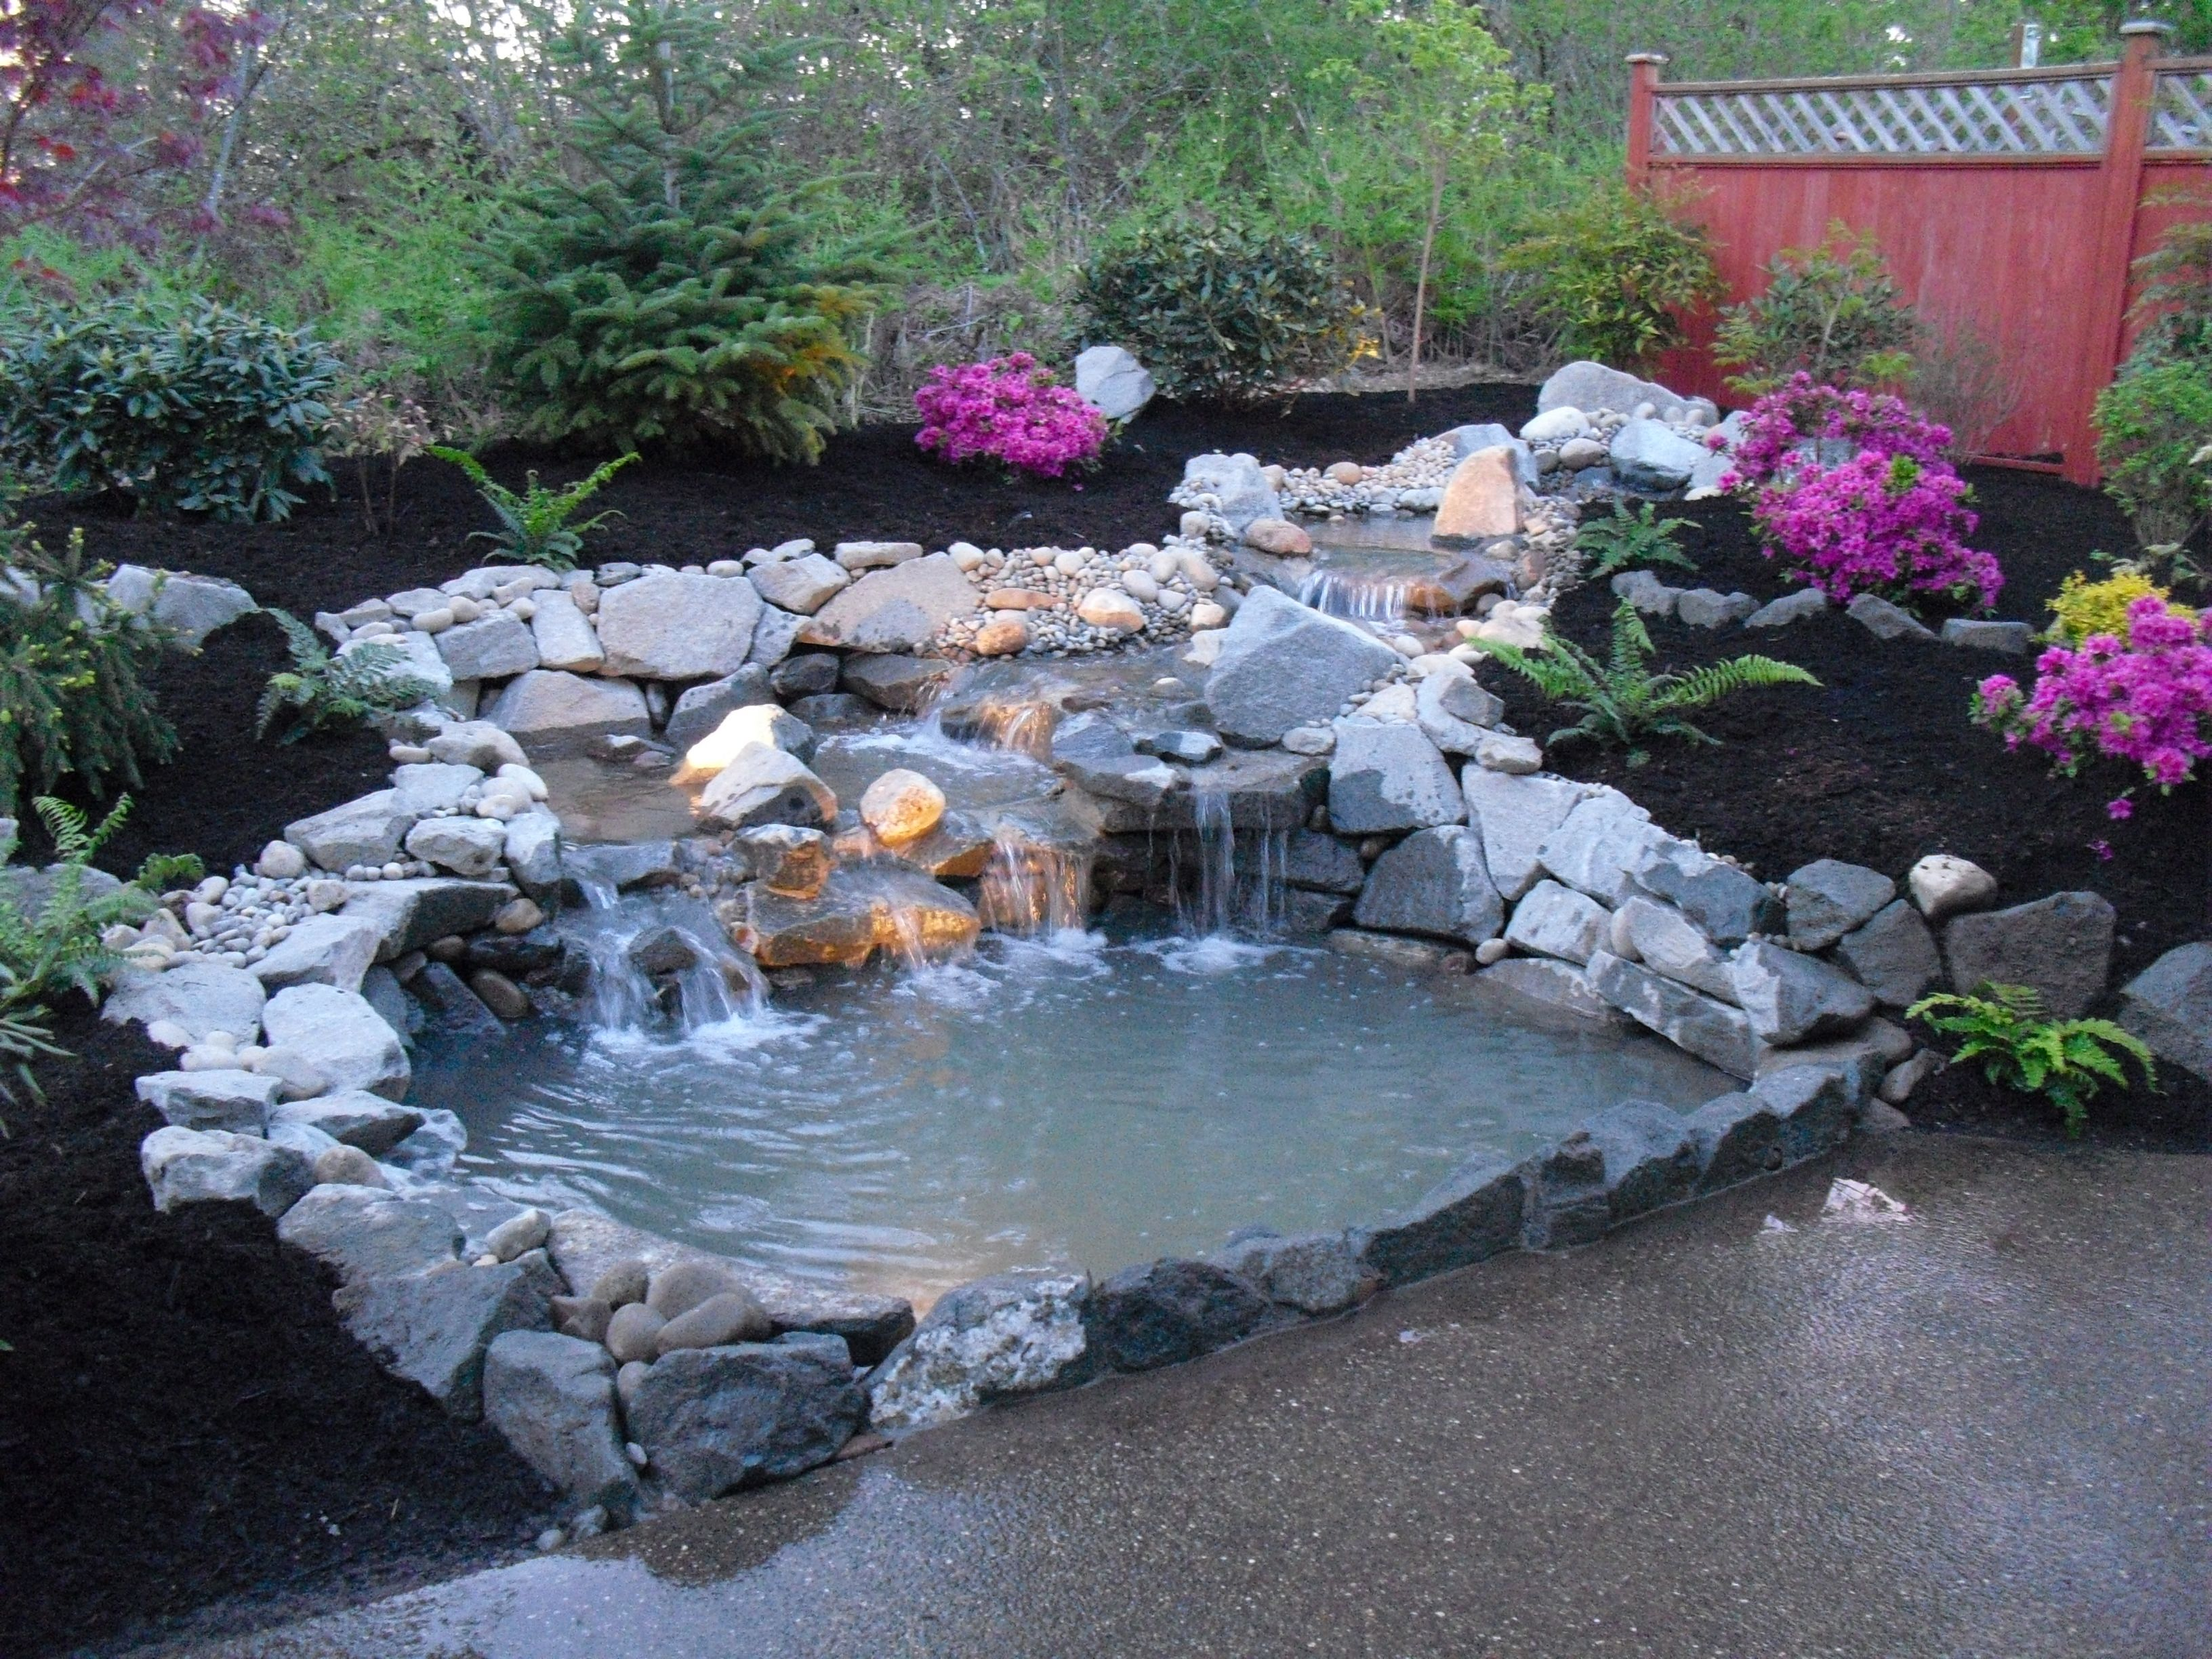 Best 25 Pond kits ideas on Pinterest Koi pond kits Fish ponds